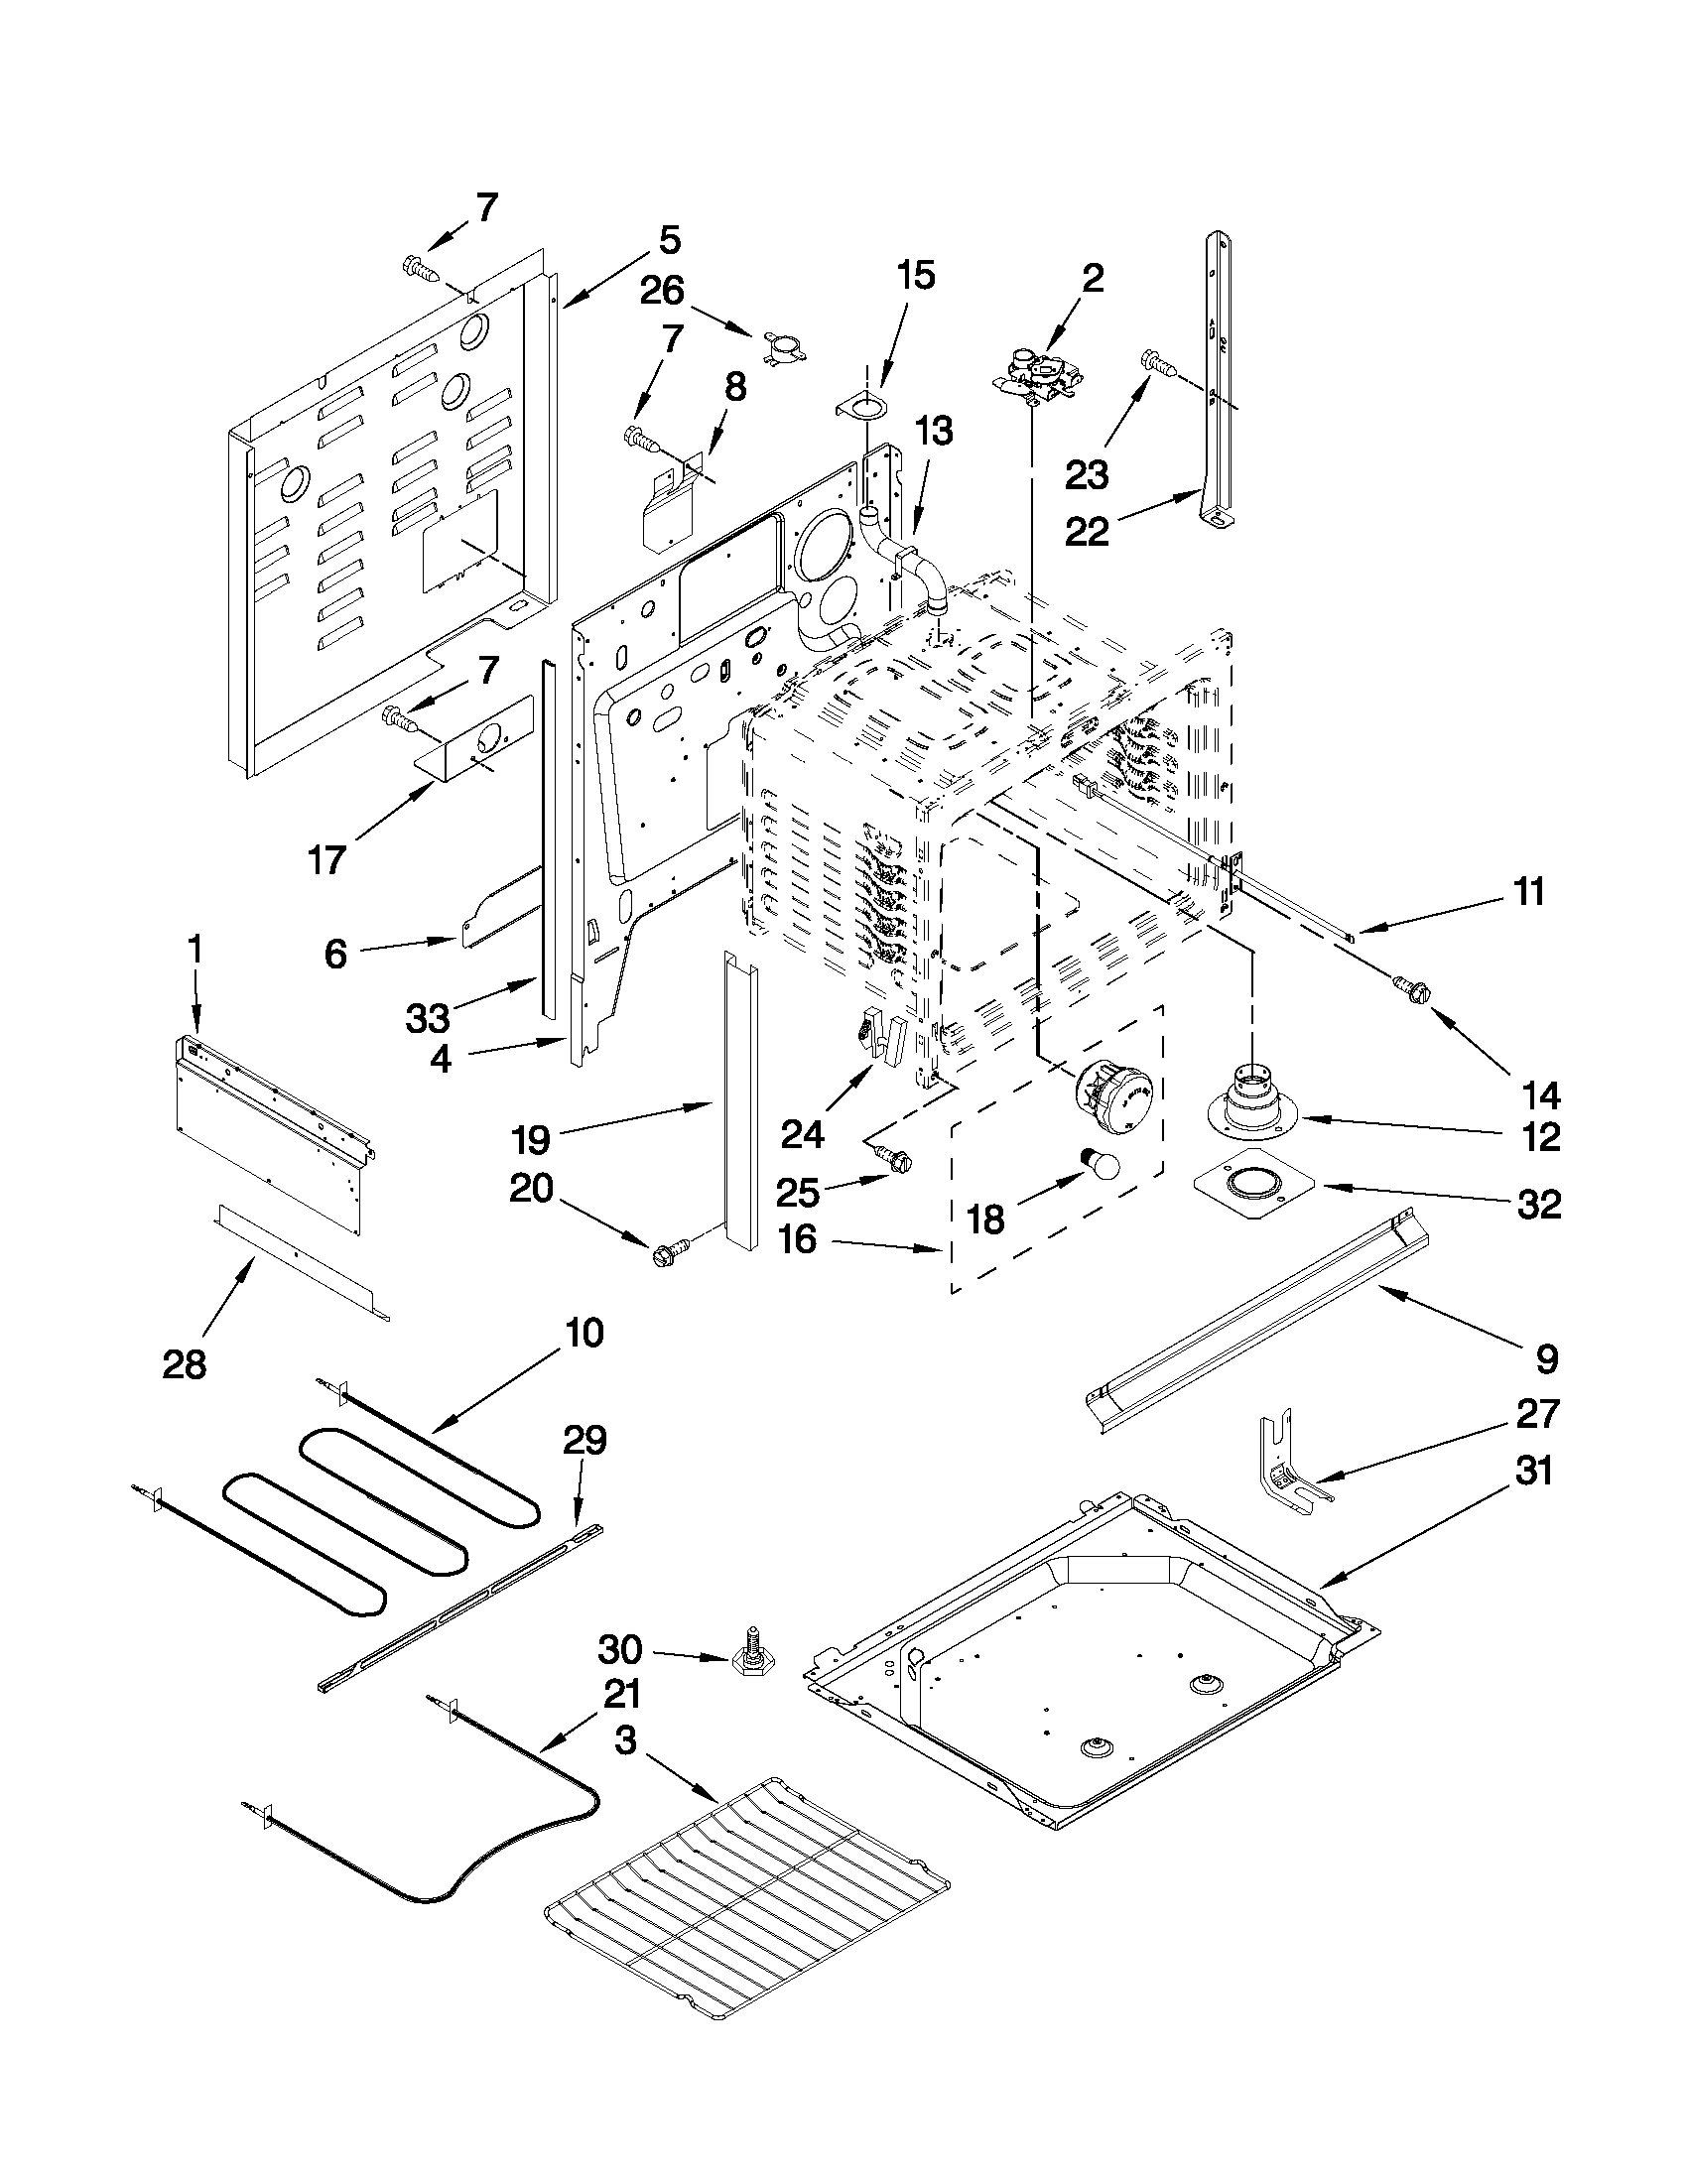 Whirlpool WDE150LVT01 chassis parts diagram